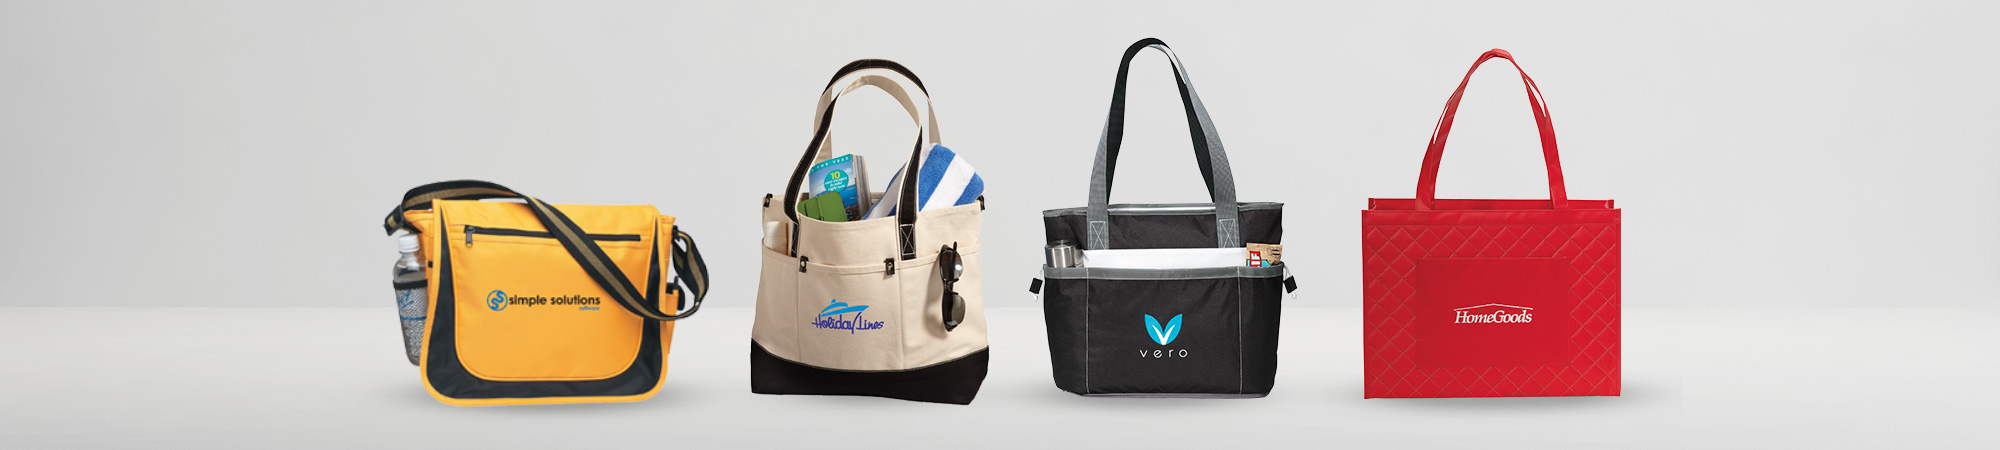 Advertising Specialty Services Promotional Products And Apparel Savannah Ga Home